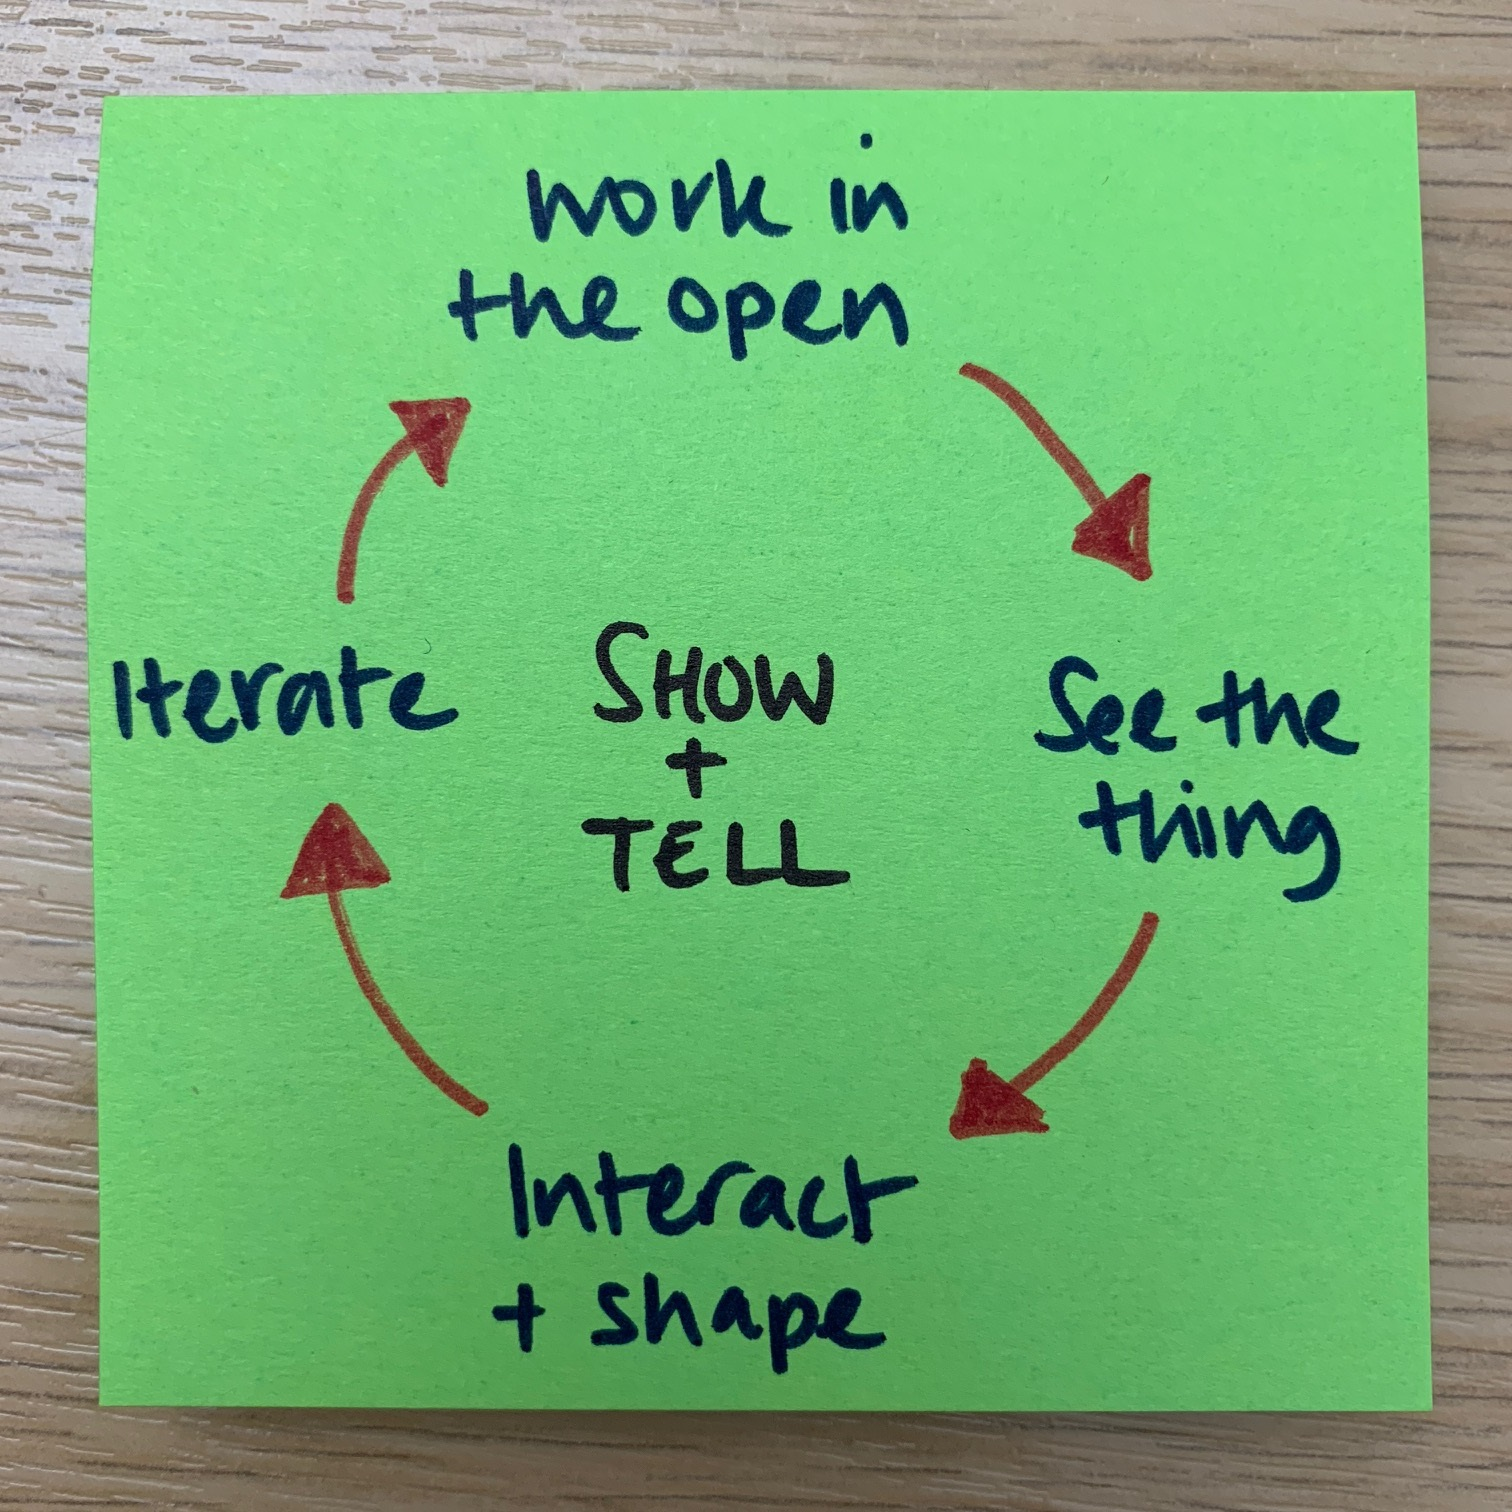 Show and Tell process diagram on a post-it note